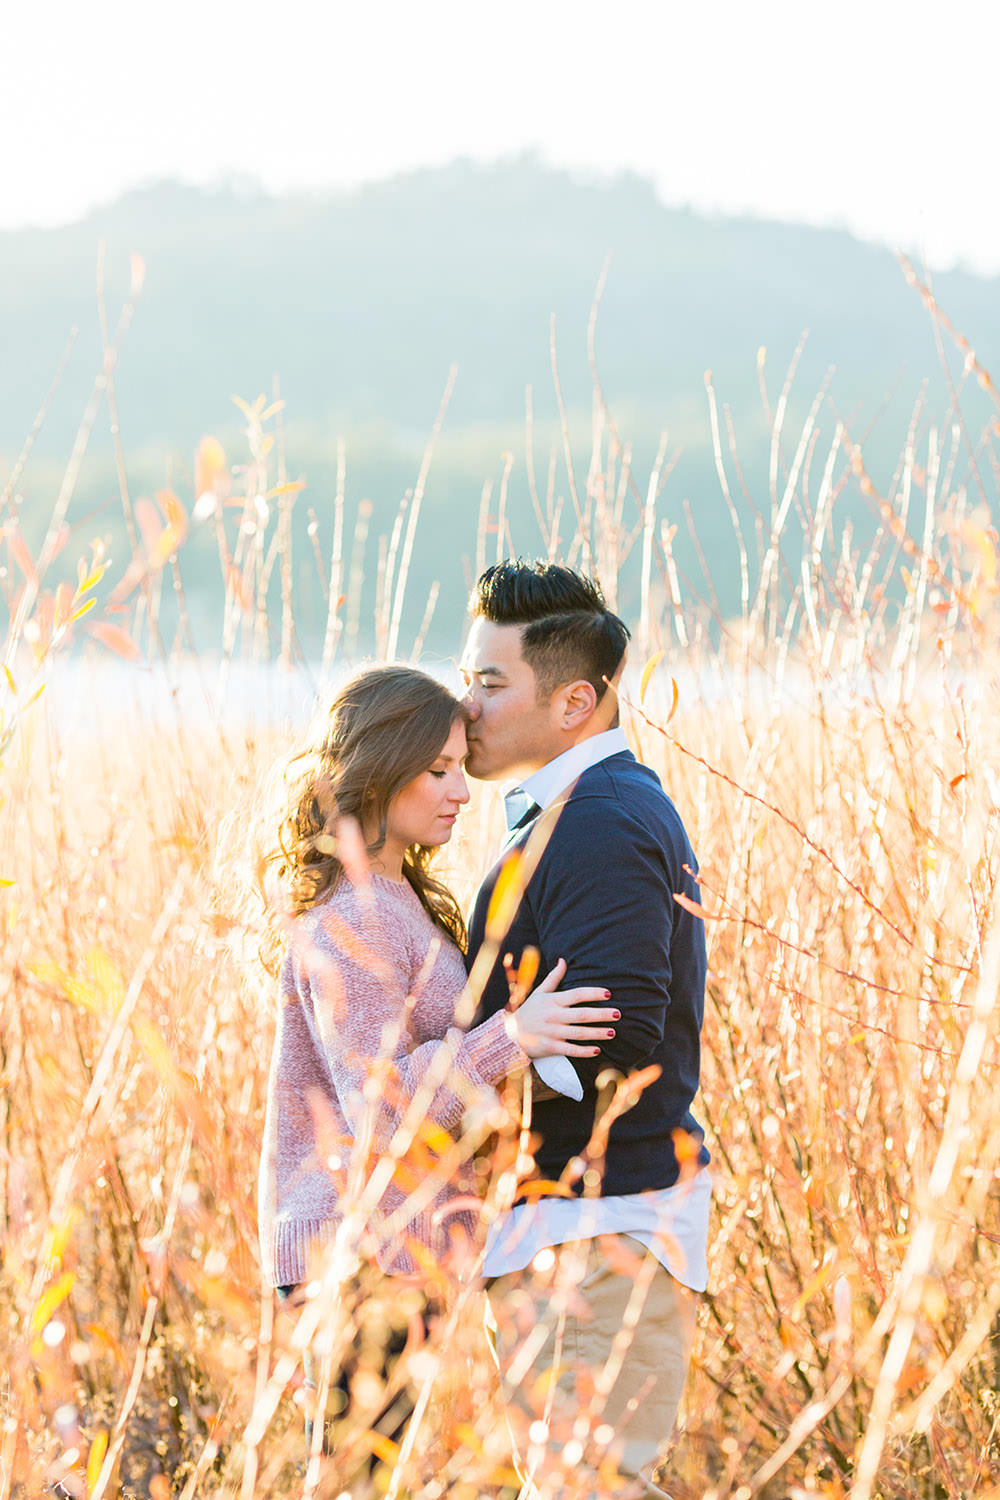 Engagement Session at Big Bear Lake, California